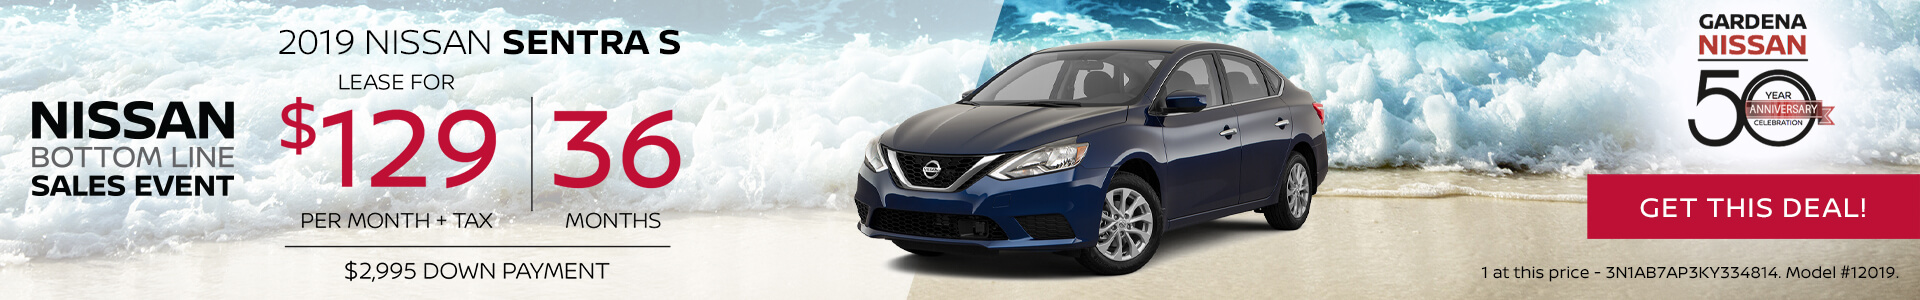 Sentra - Lease for $129